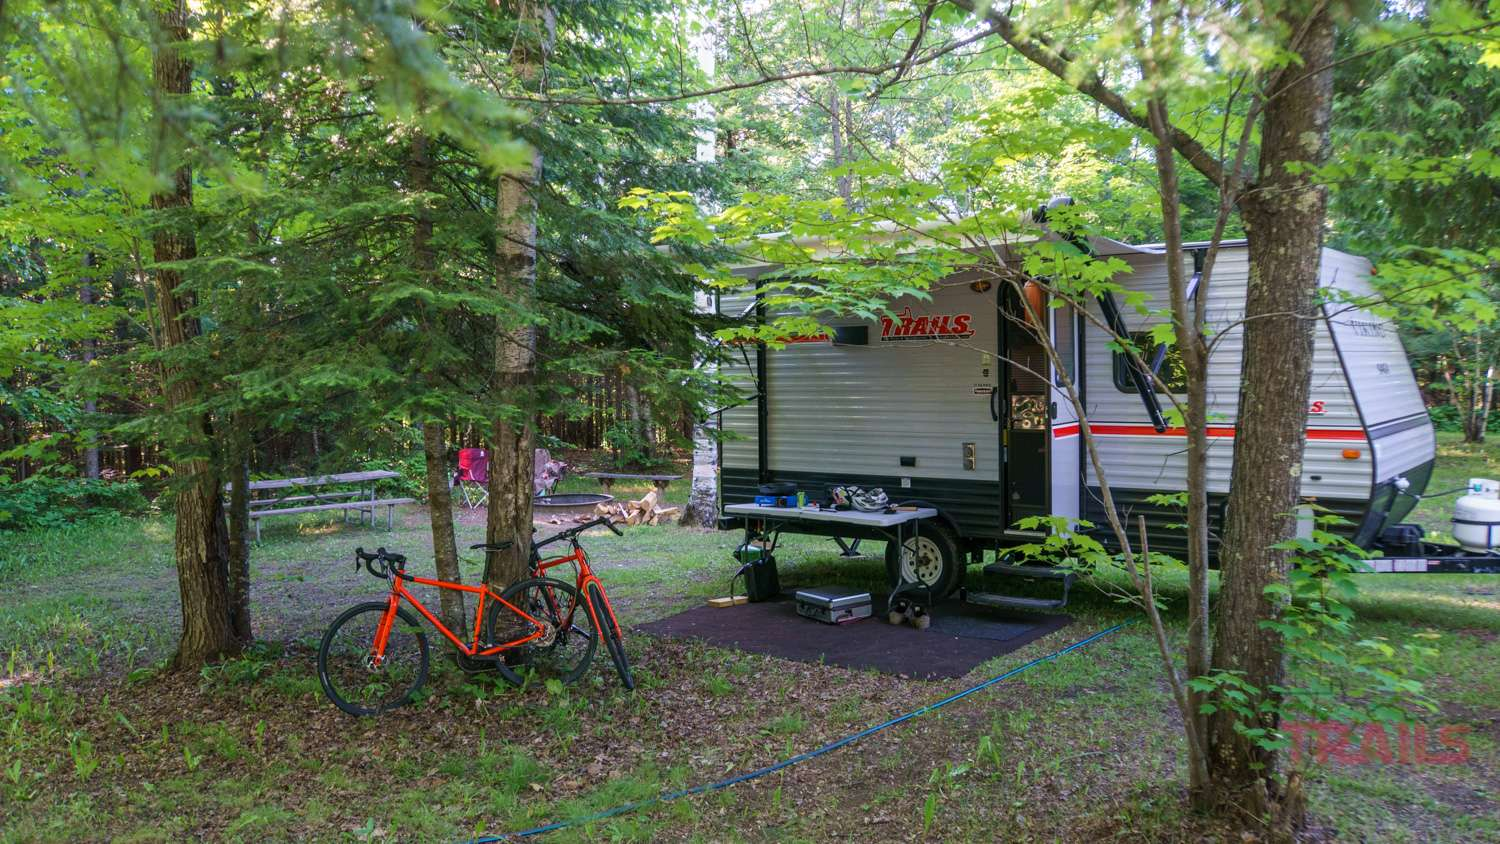 Camping trailer in a wooded campground